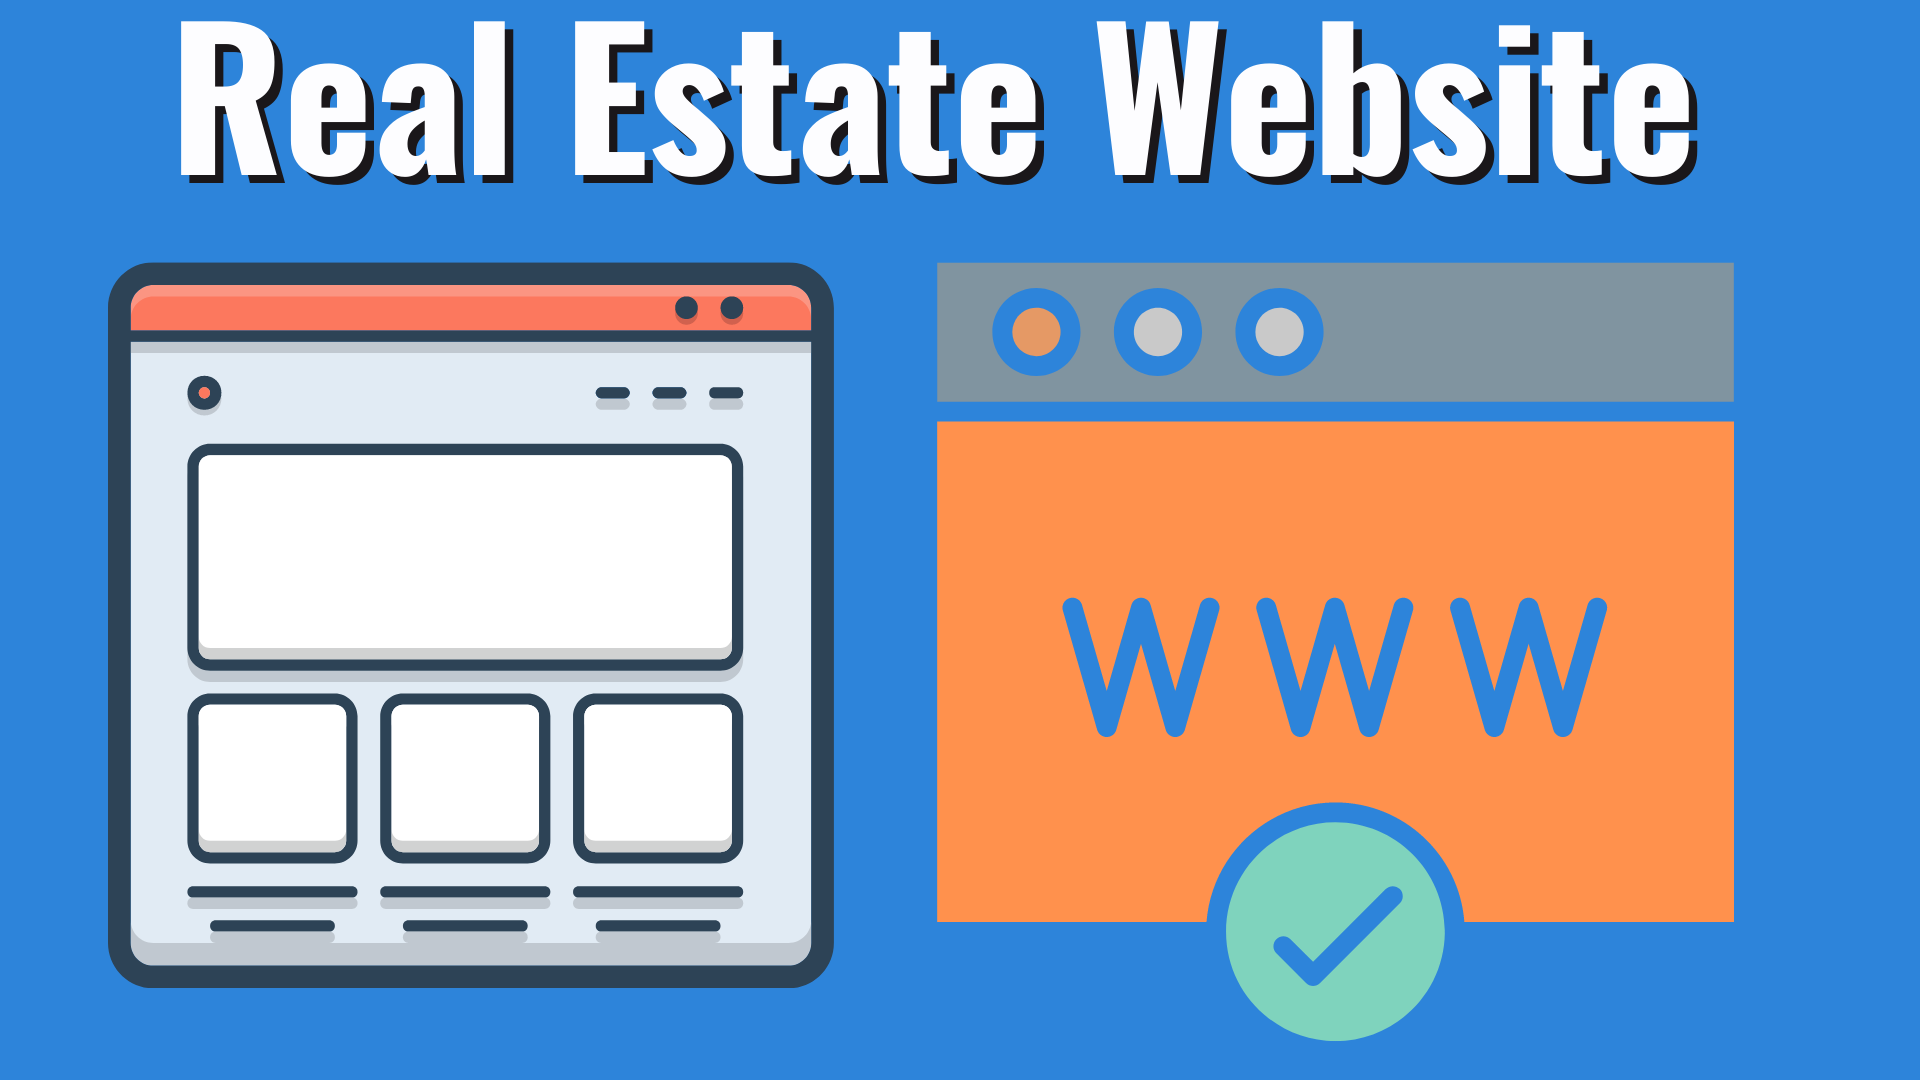 Get Motivated Seller Real Estate Leads Through Facebook - Your Website